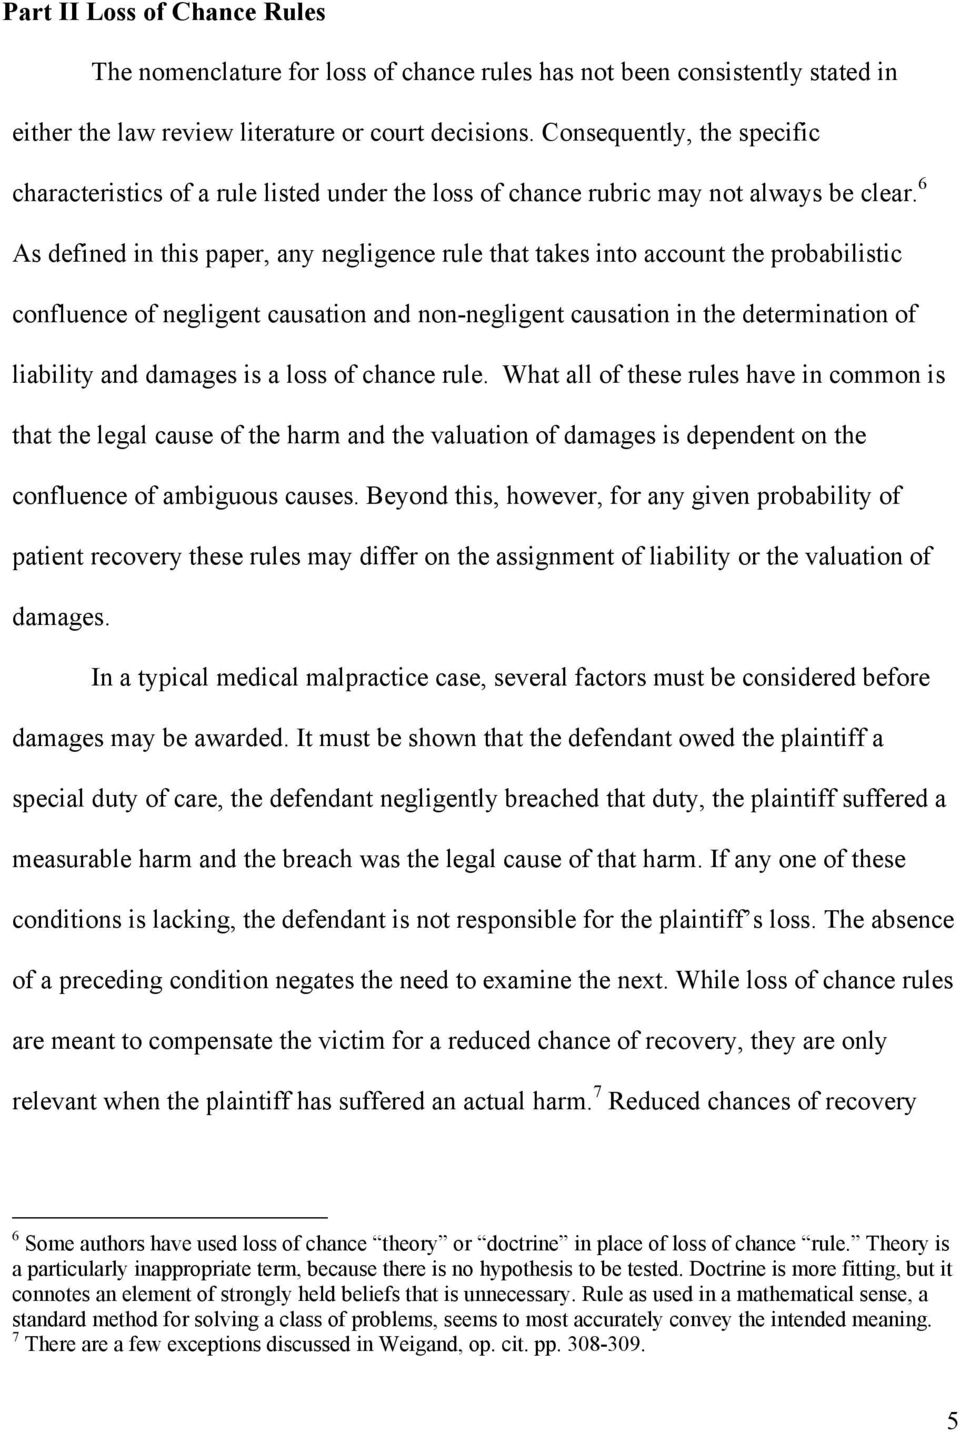 6 As defined in this paper, any negligence rule that takes into account the probabilistic confluence of negligent causation and non-negligent causation in the determination of liability and damages